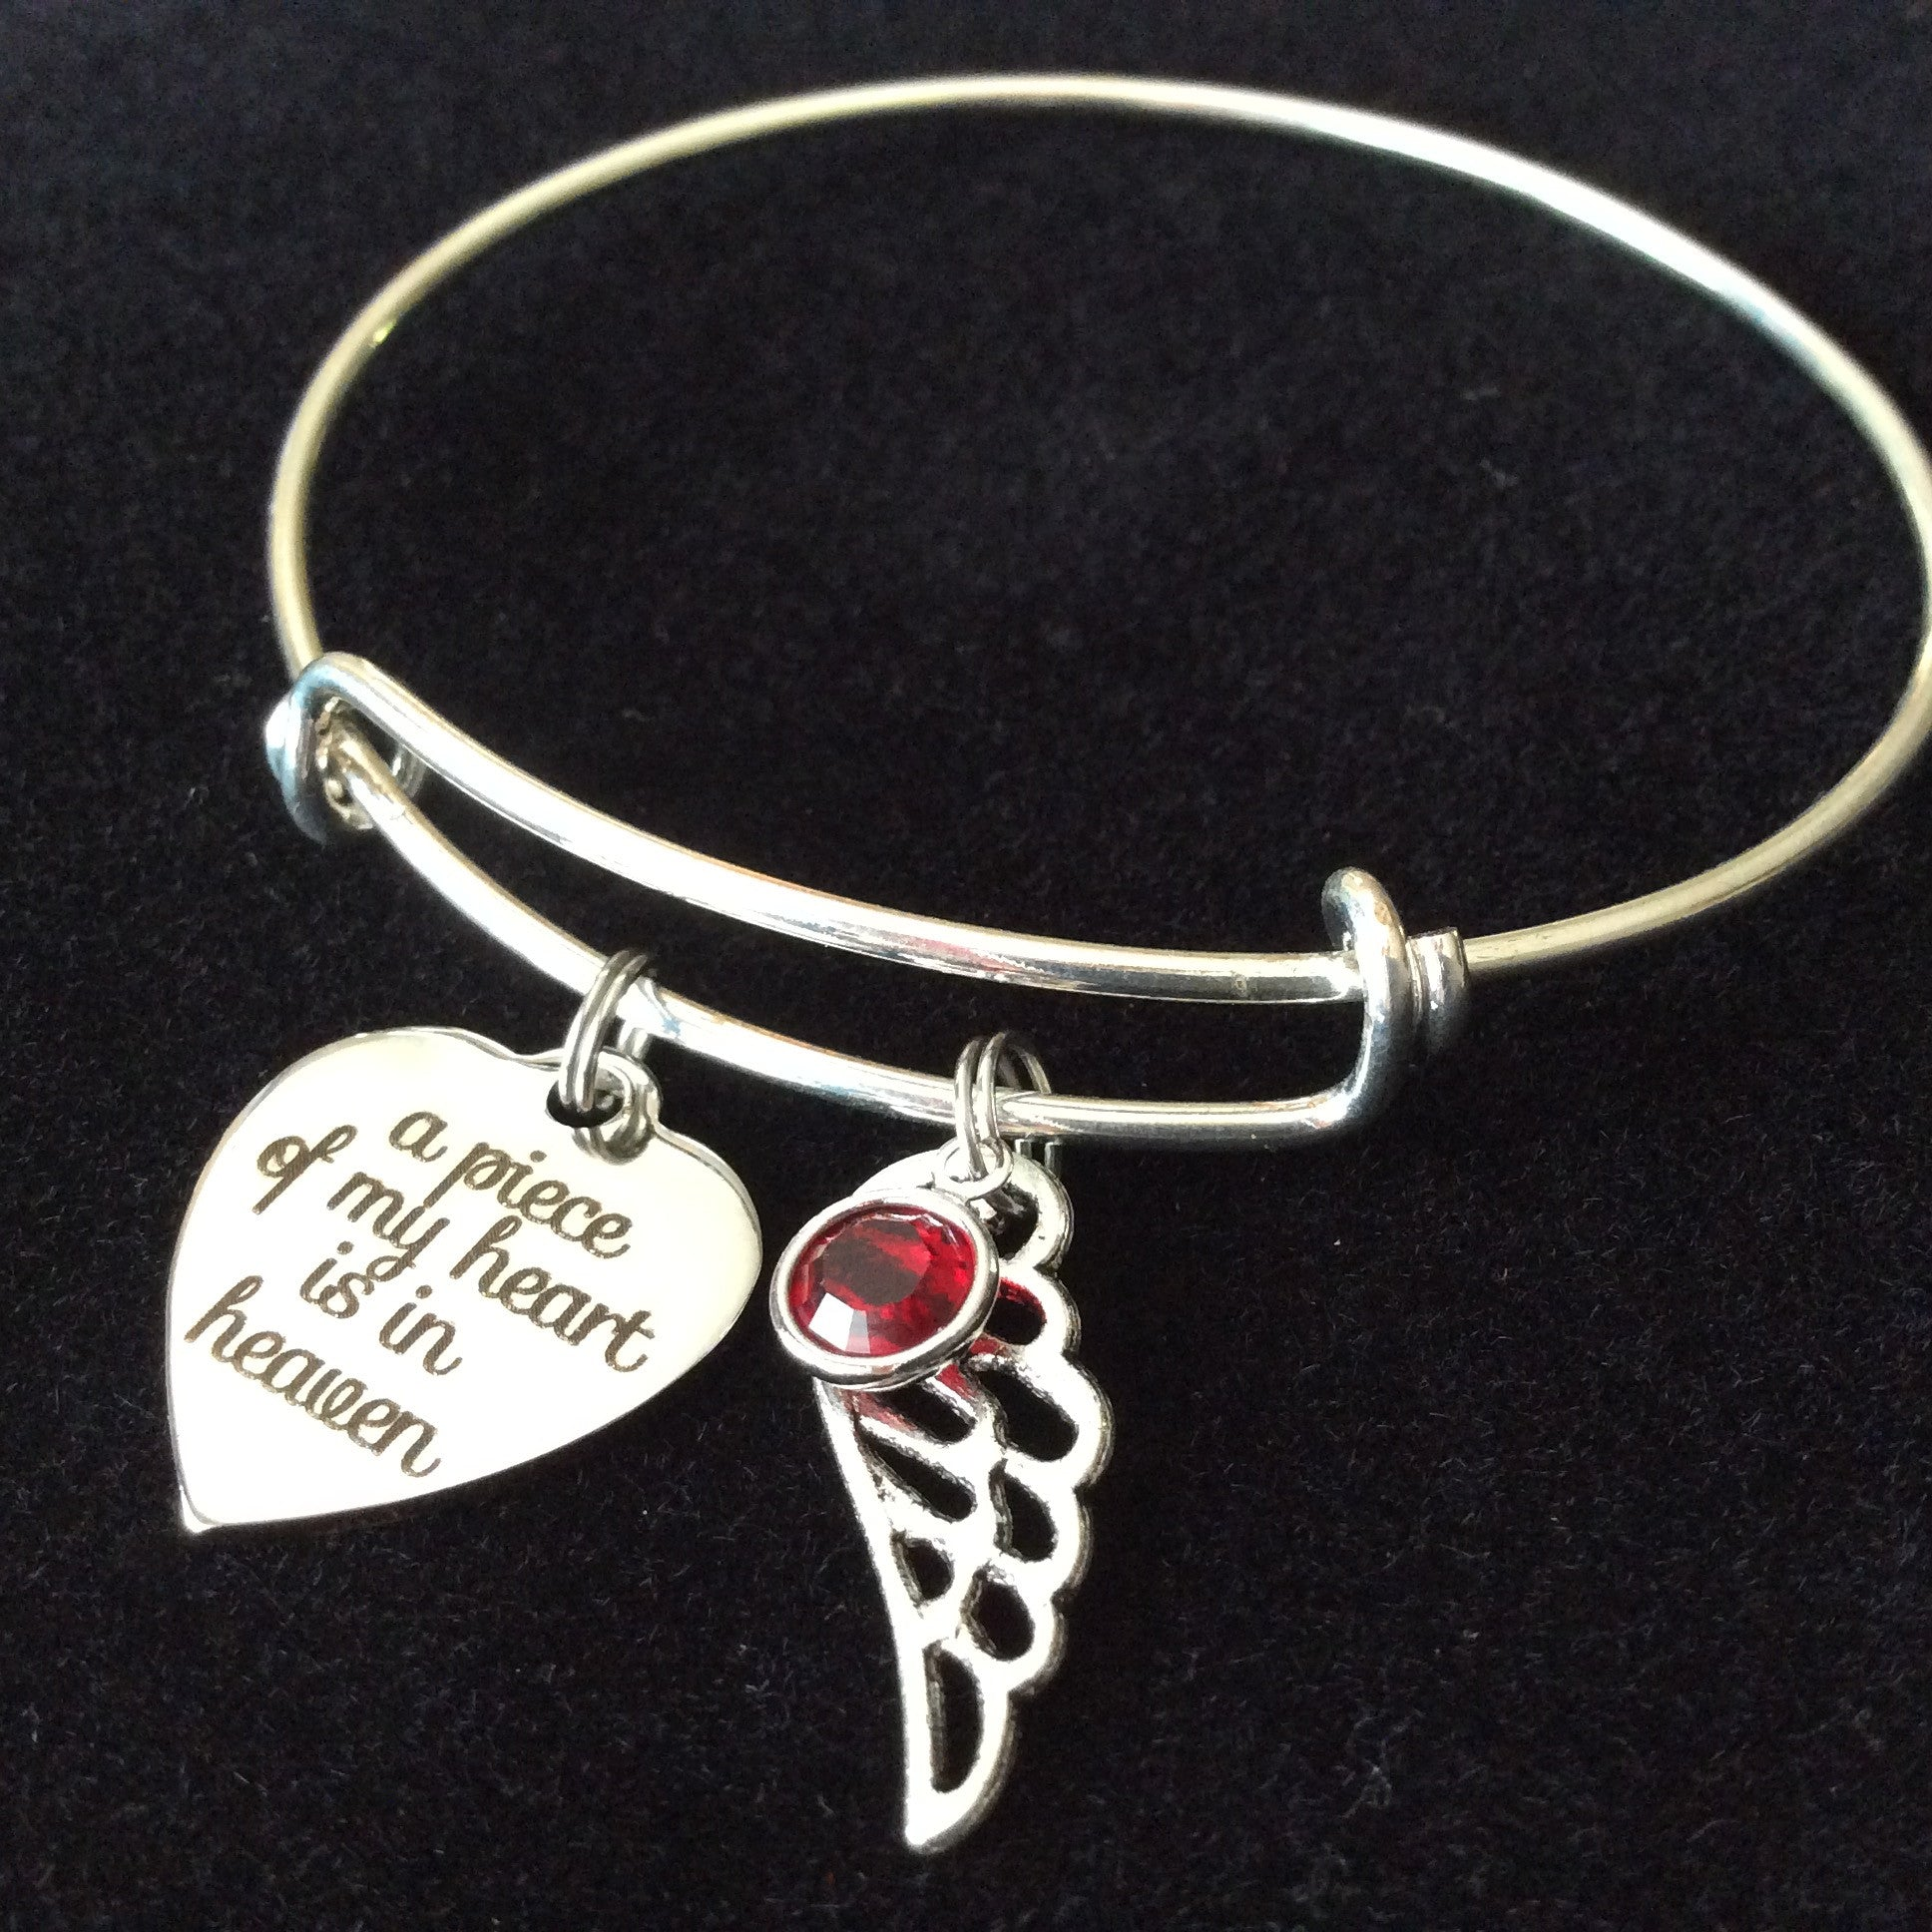 A Piece of My Heart is in Heaven Expandable Charm Bracelet